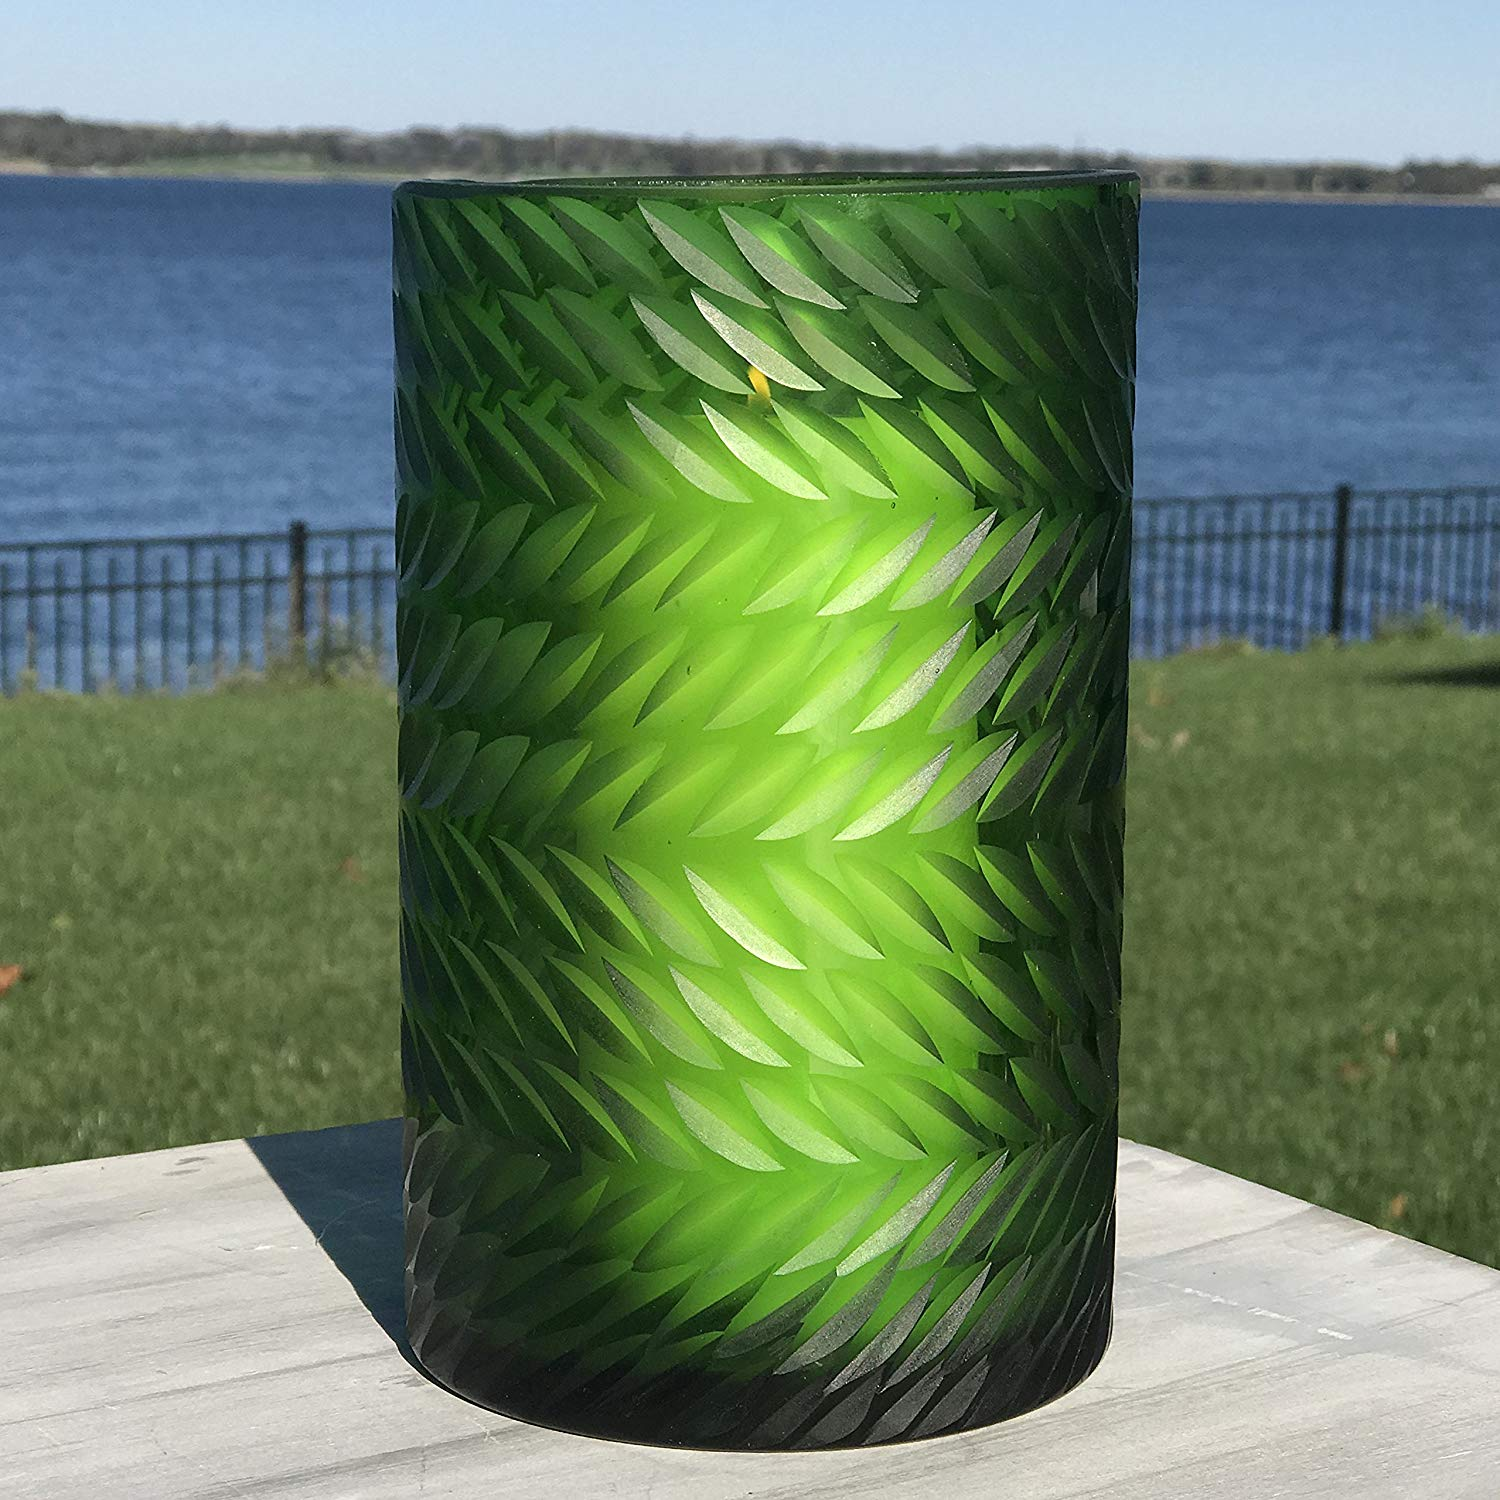 The Naturally Modern Flower Petal Hurricane Candle Holder or Vase, Art Glass, Green, Translucent, Incised Textured Glass, Herringbone Pattern, 8 H Inches Tall, By Whole House Worlds